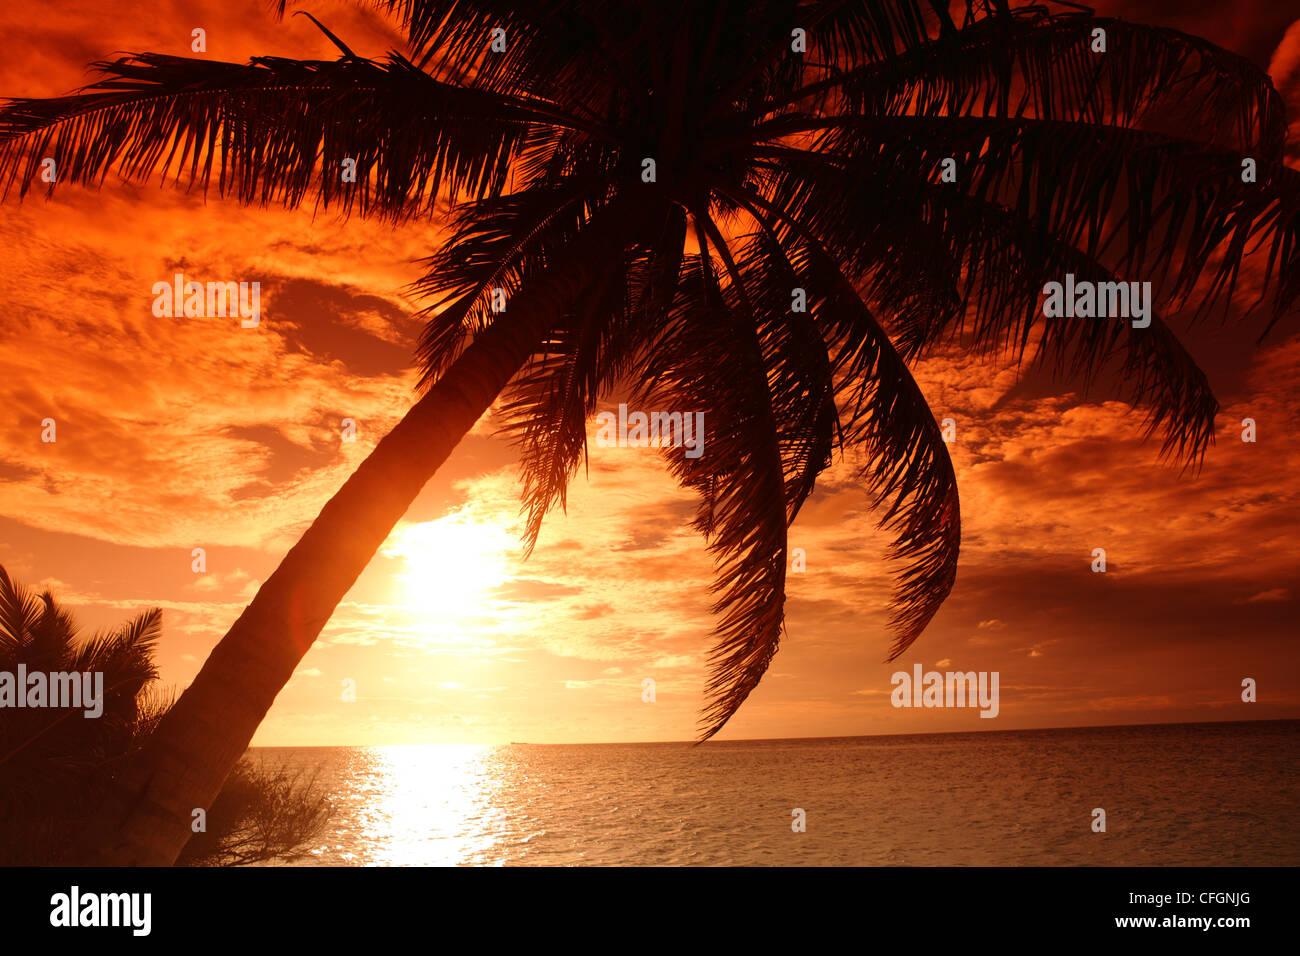 Palm on the beach at sunset, Filitheyo island, Maldives Stock Photo